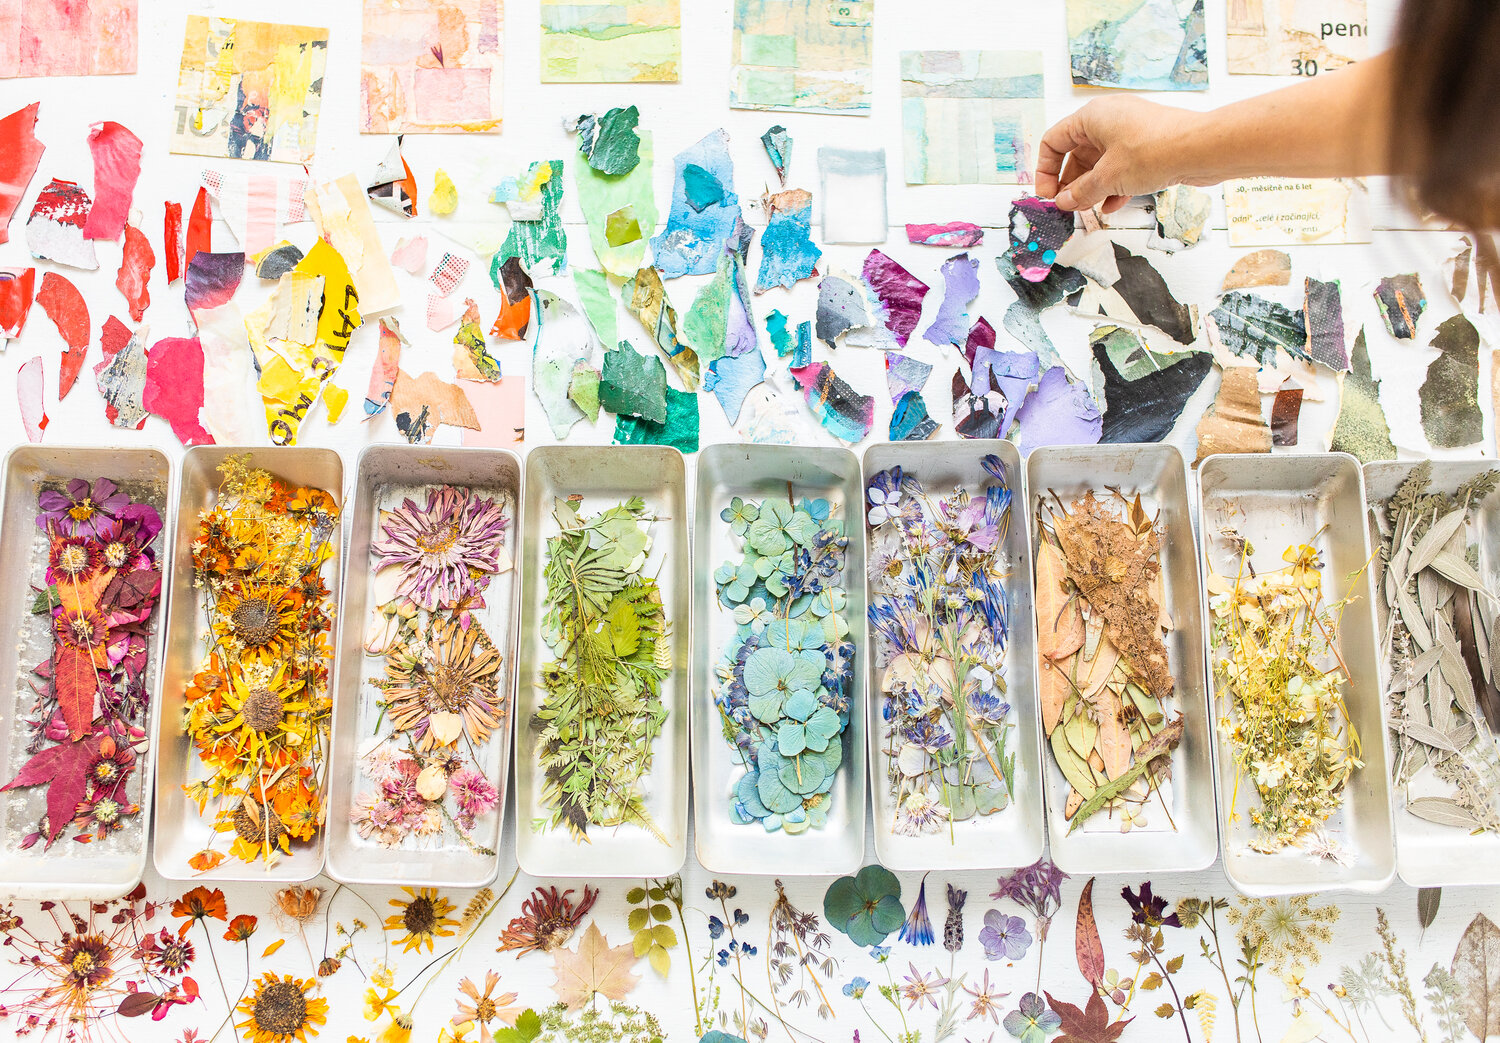 Tricia Paoluccio picks up a pressed flower from color coded trays in a light-filled room